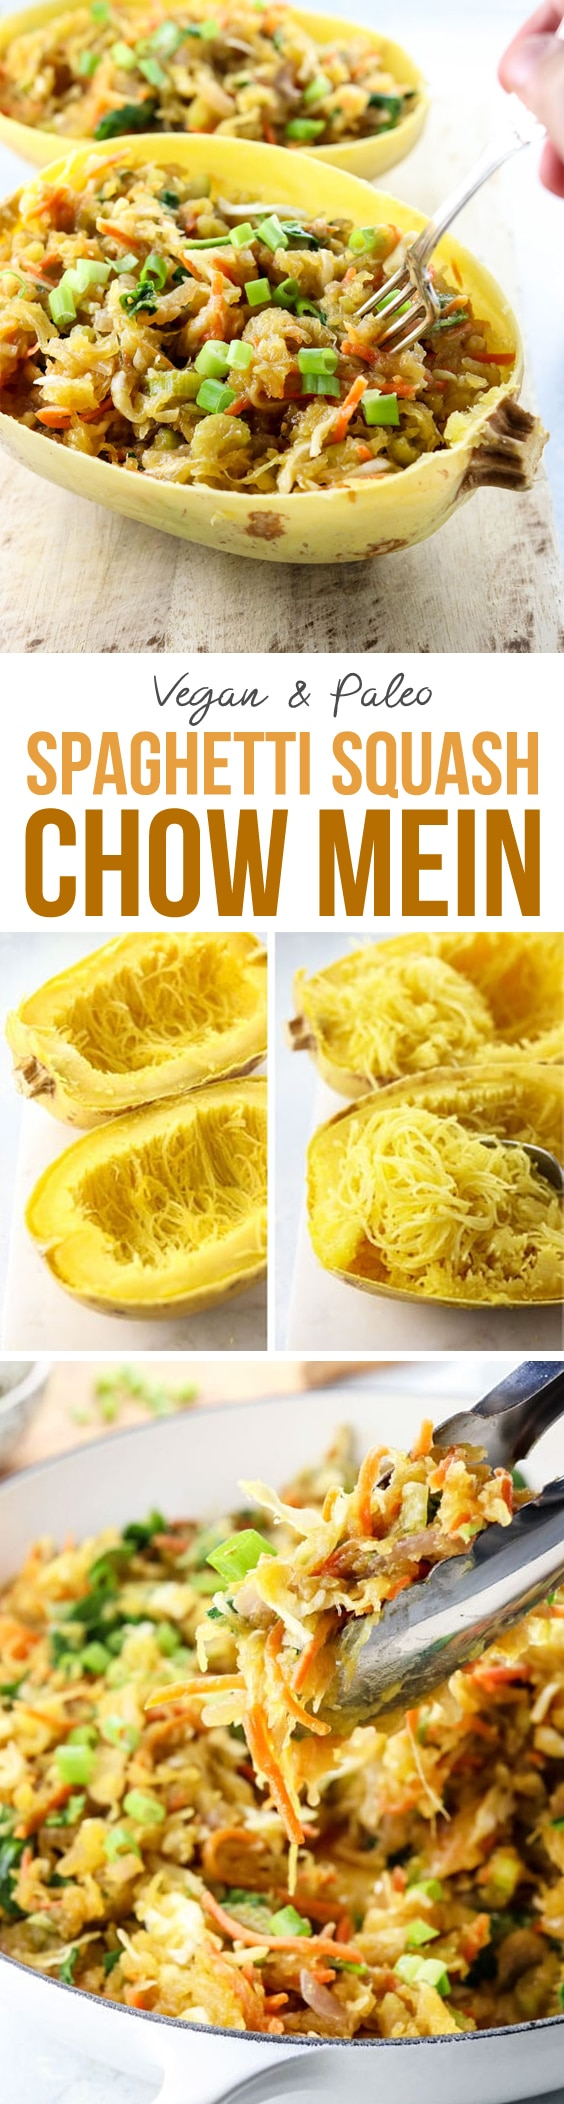 Spaghetti Squash Chow Mein makes an easy vegan or vegetarian dinner. It's made with low-carb